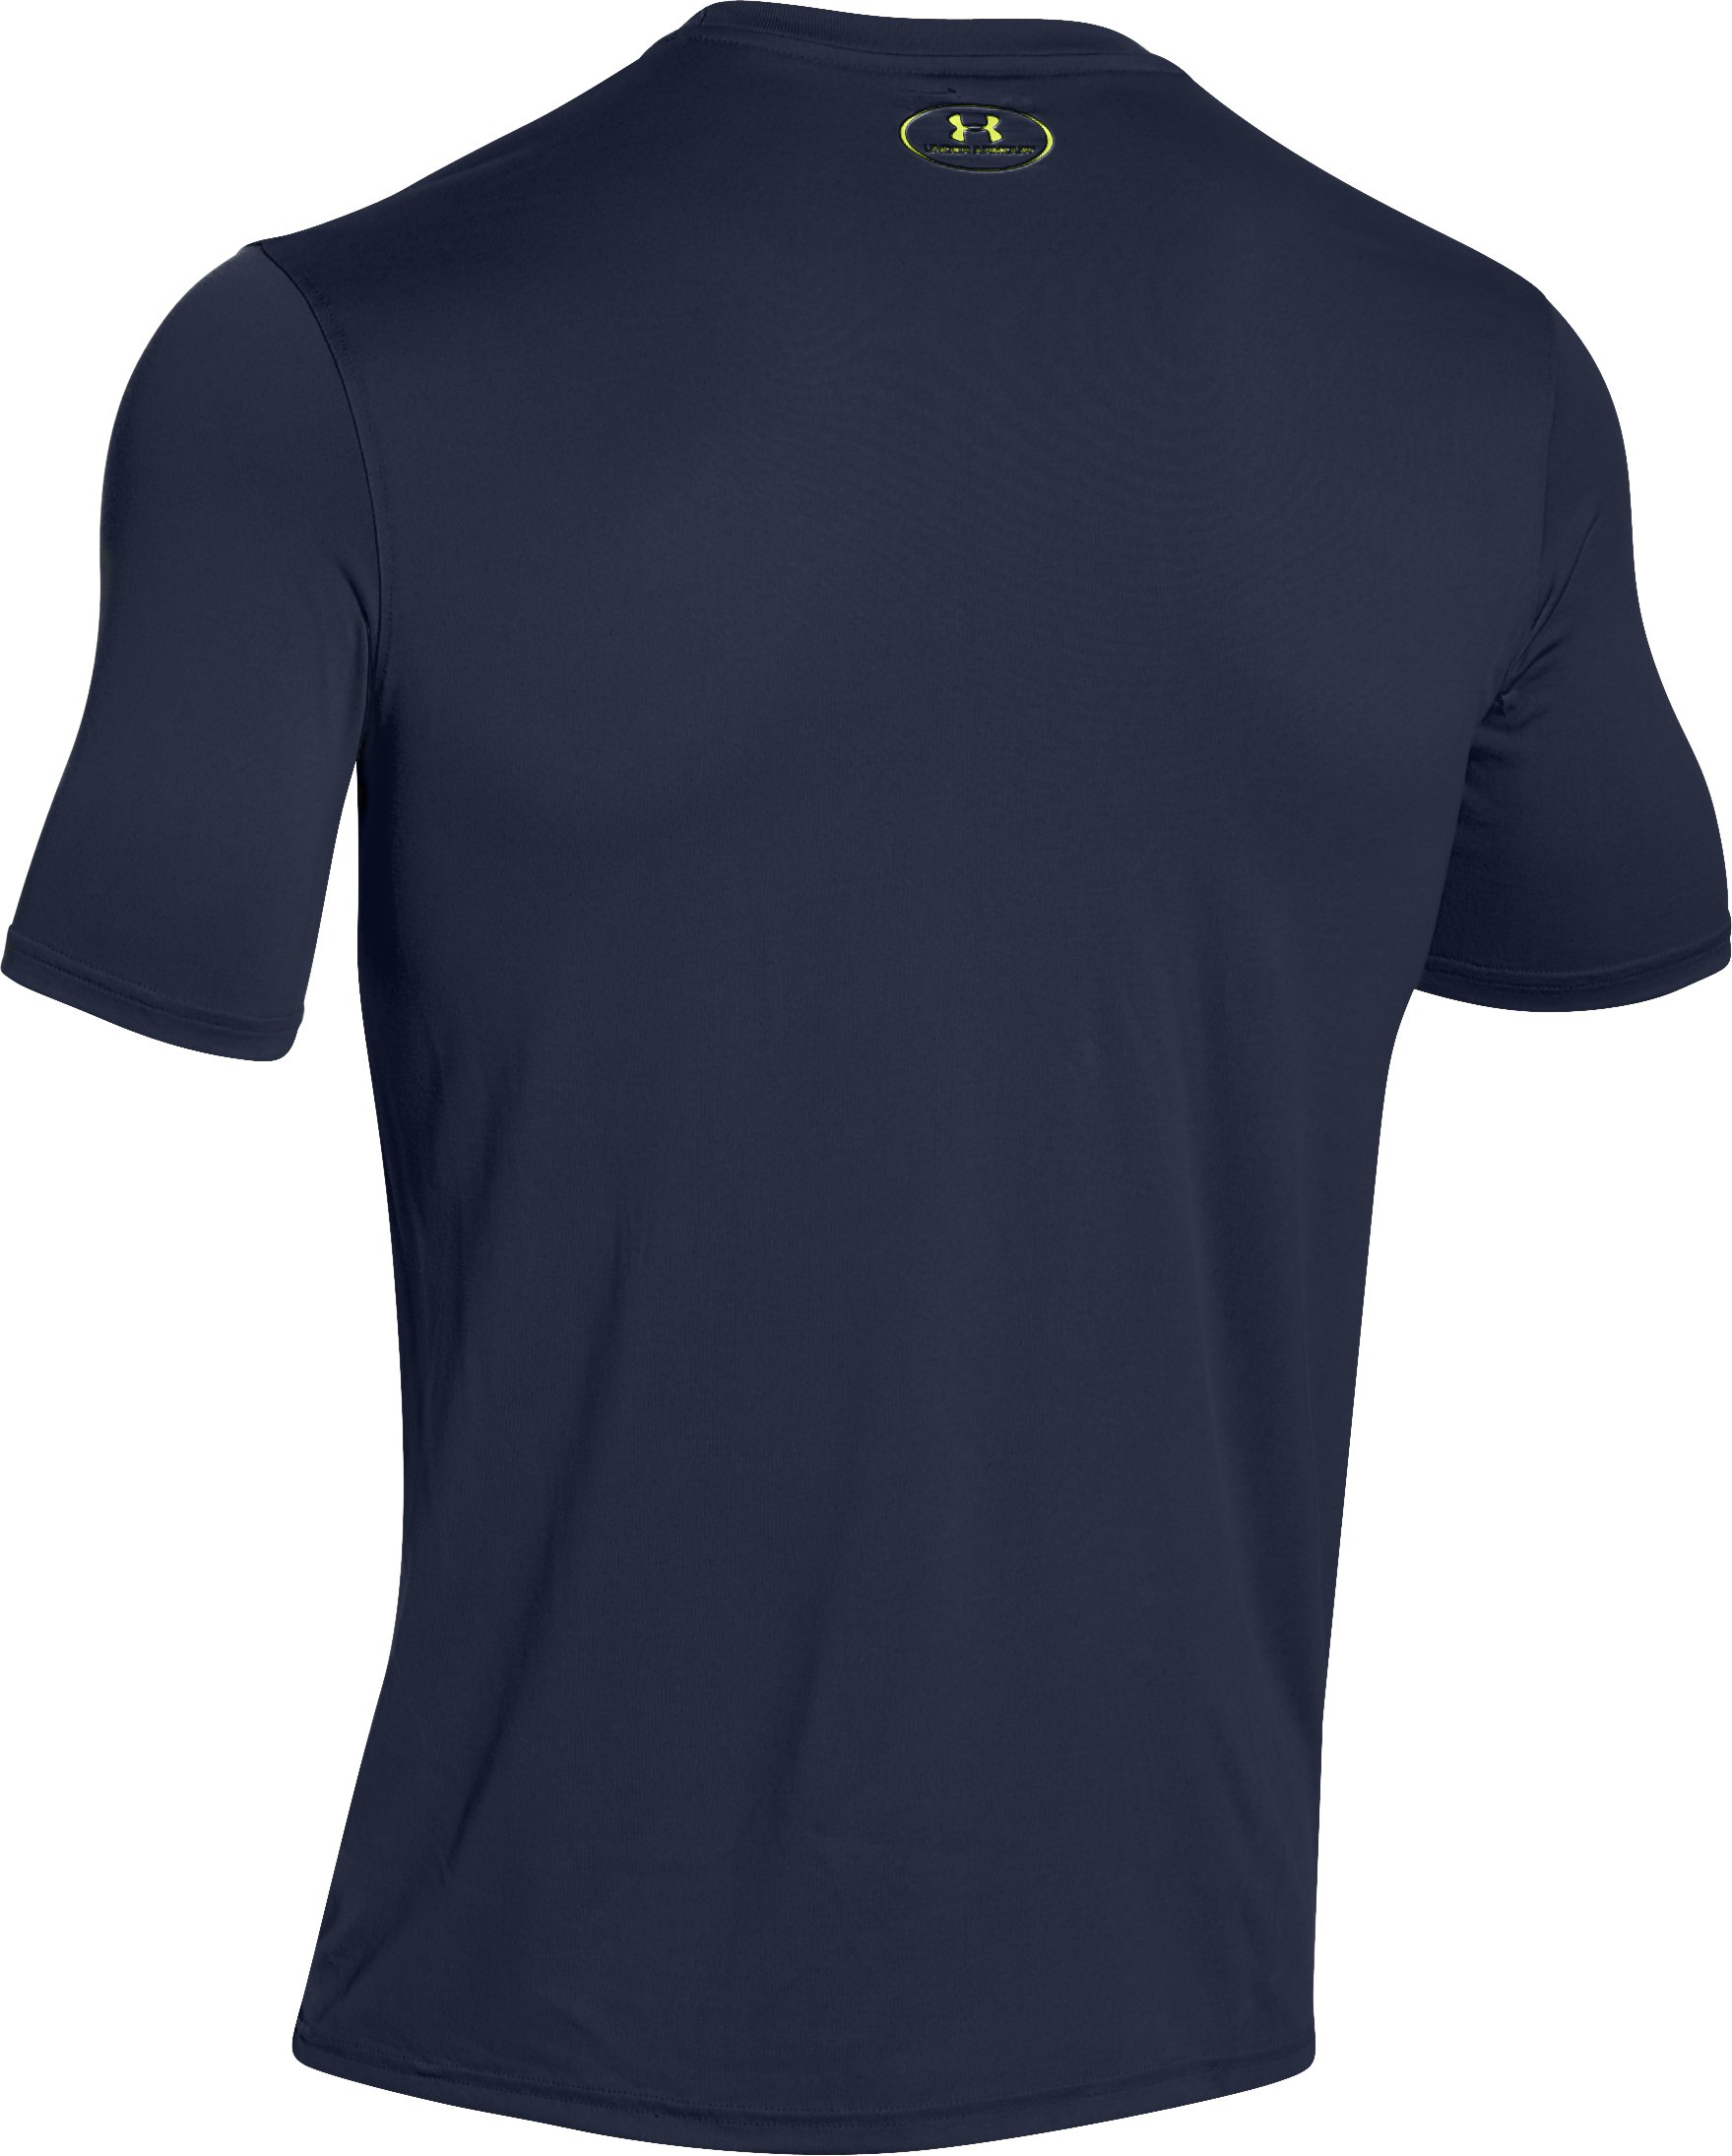 Men's UA Fish T-Shirt, Midnight Navy